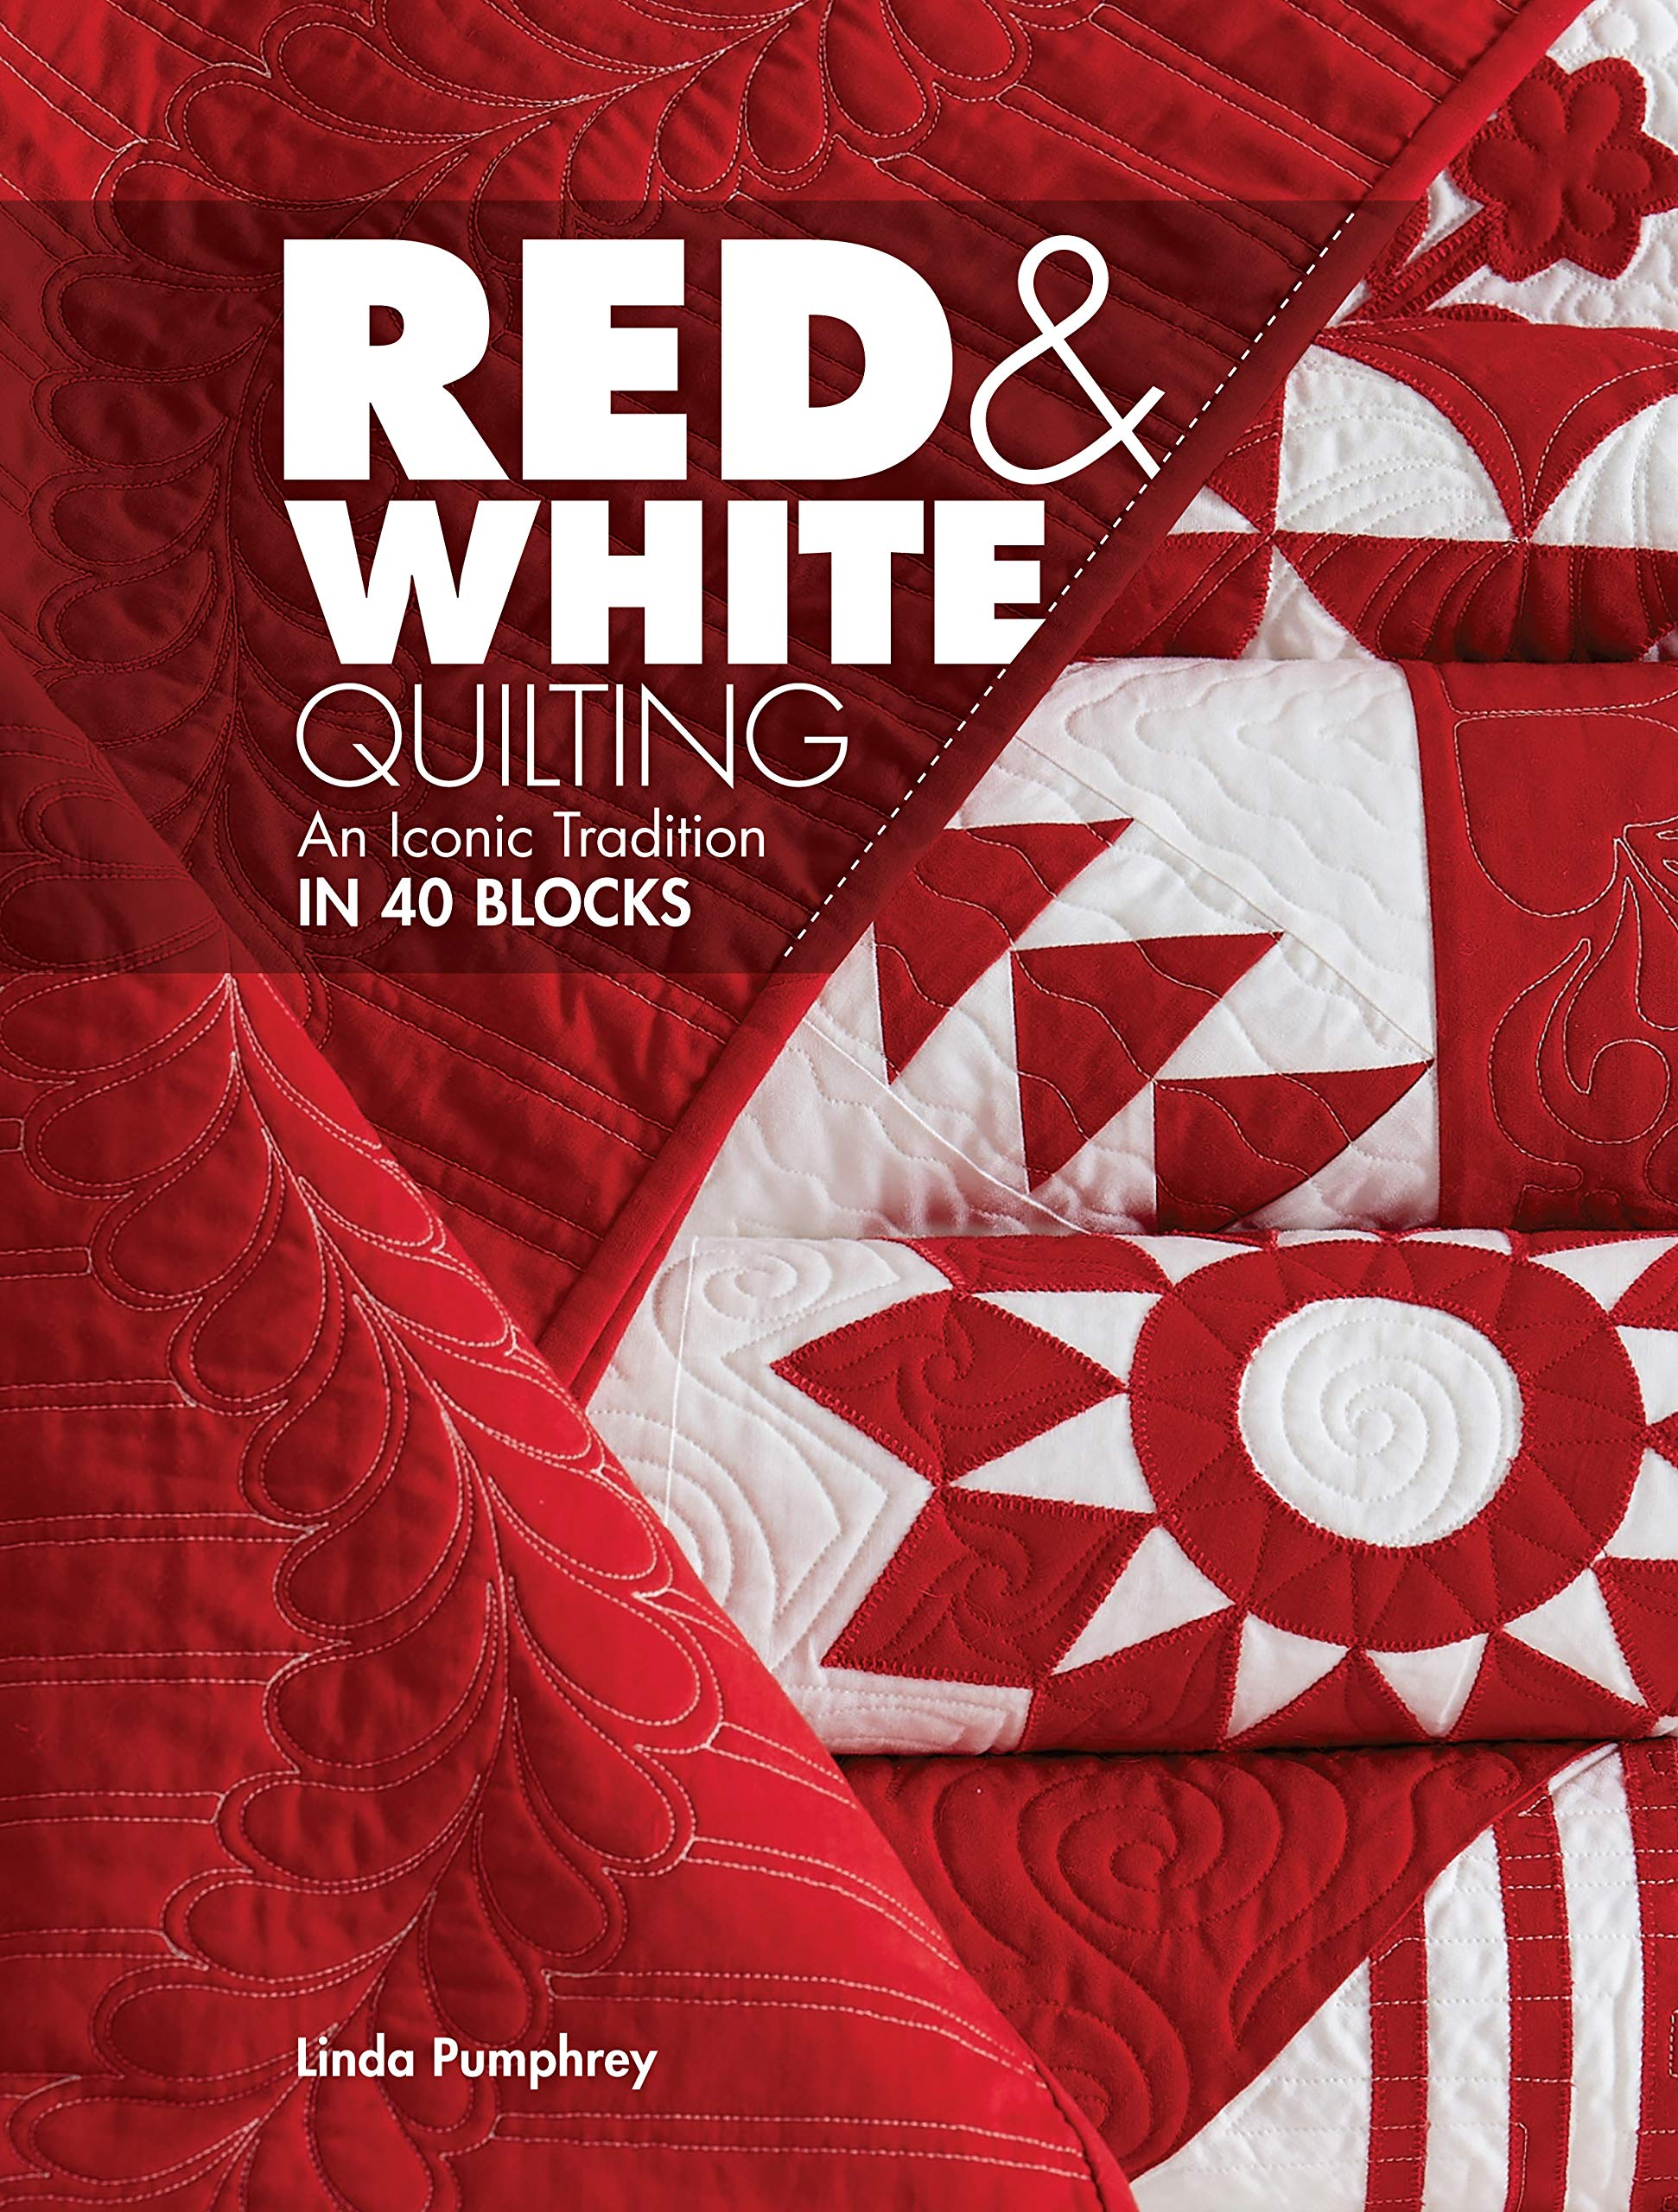 Red & White Quilting: An Iconic Tradition in 40 Blocks: Pumphrey